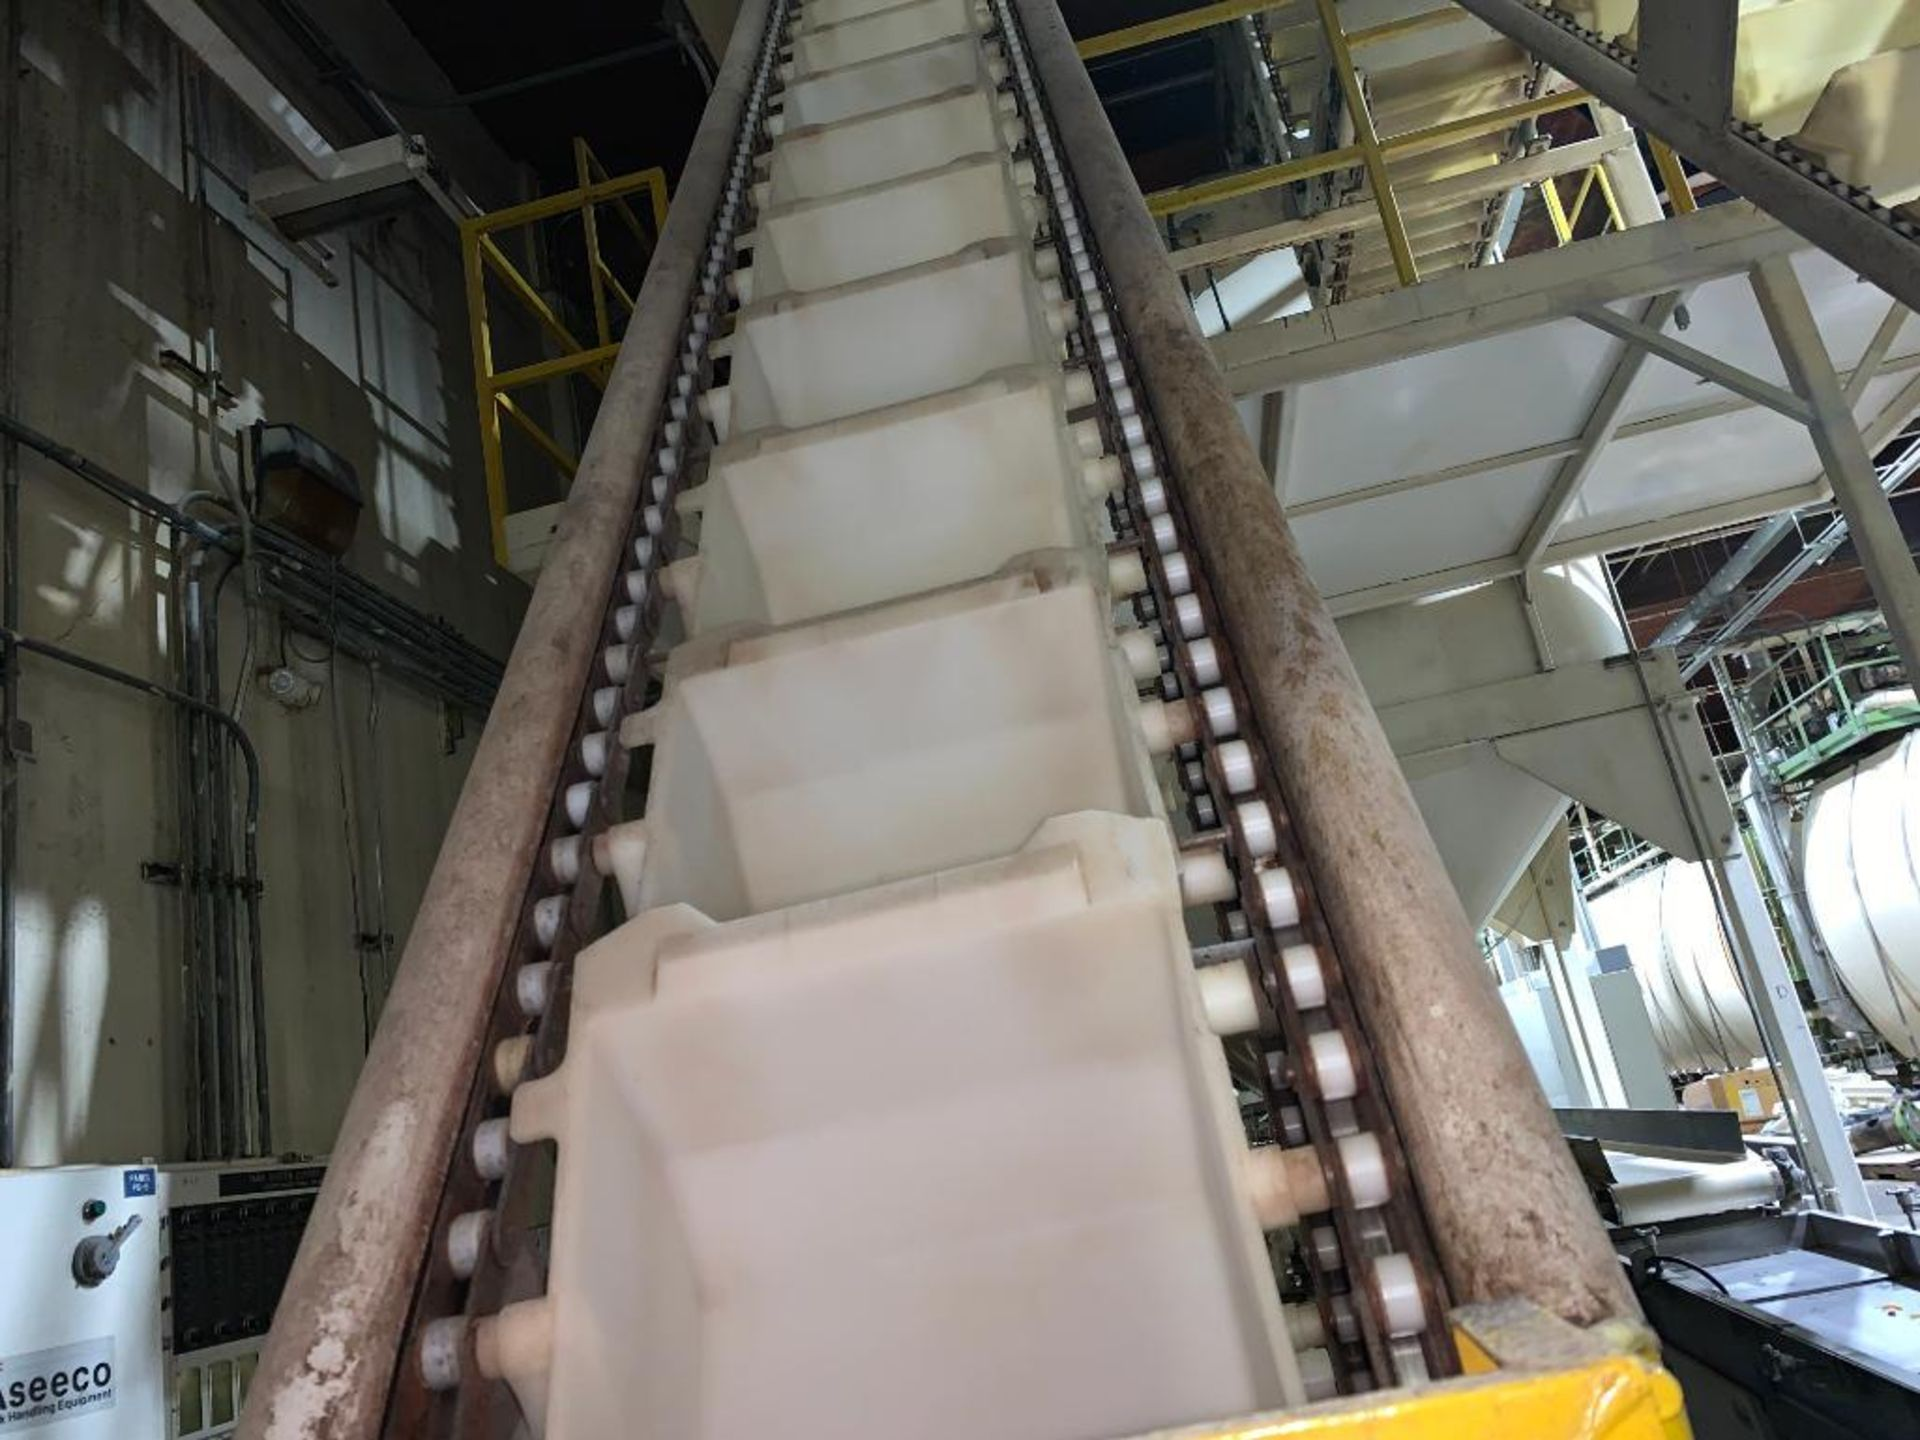 1992 Aseeco overlapping bucket incline conveyor, model ALH-0-12, Z-shape - Image 9 of 14